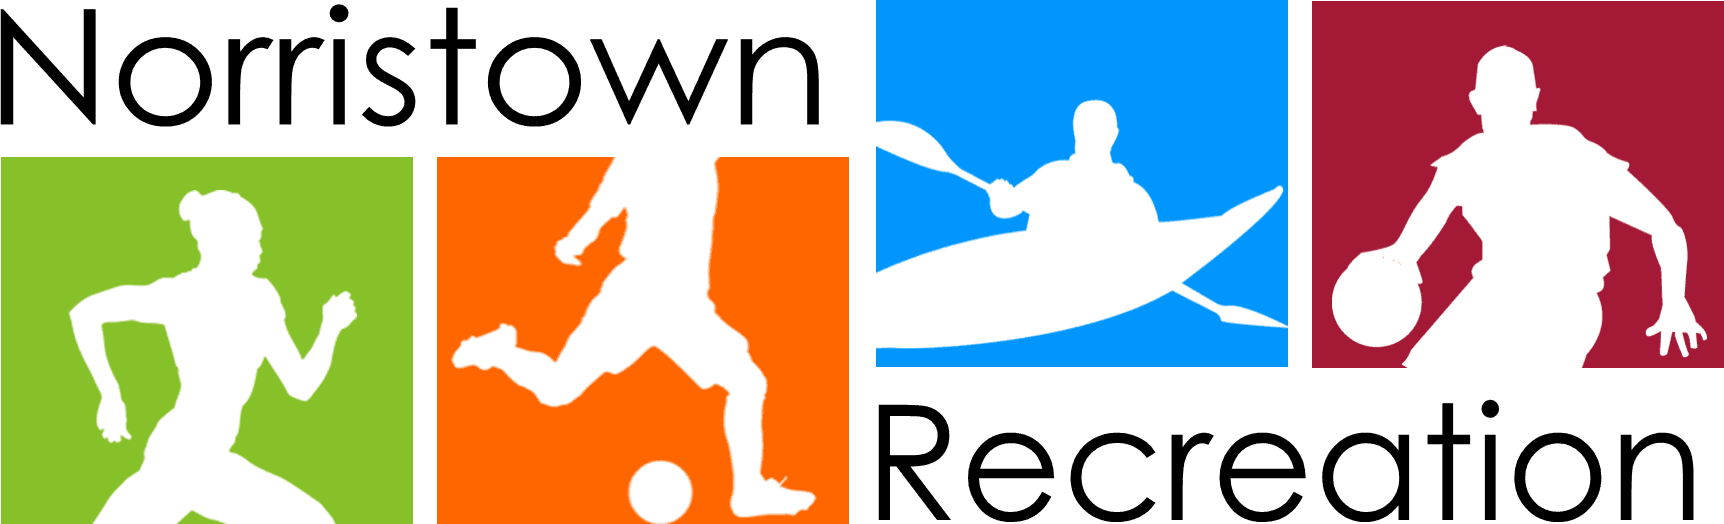 Norristown Recreation - Logo